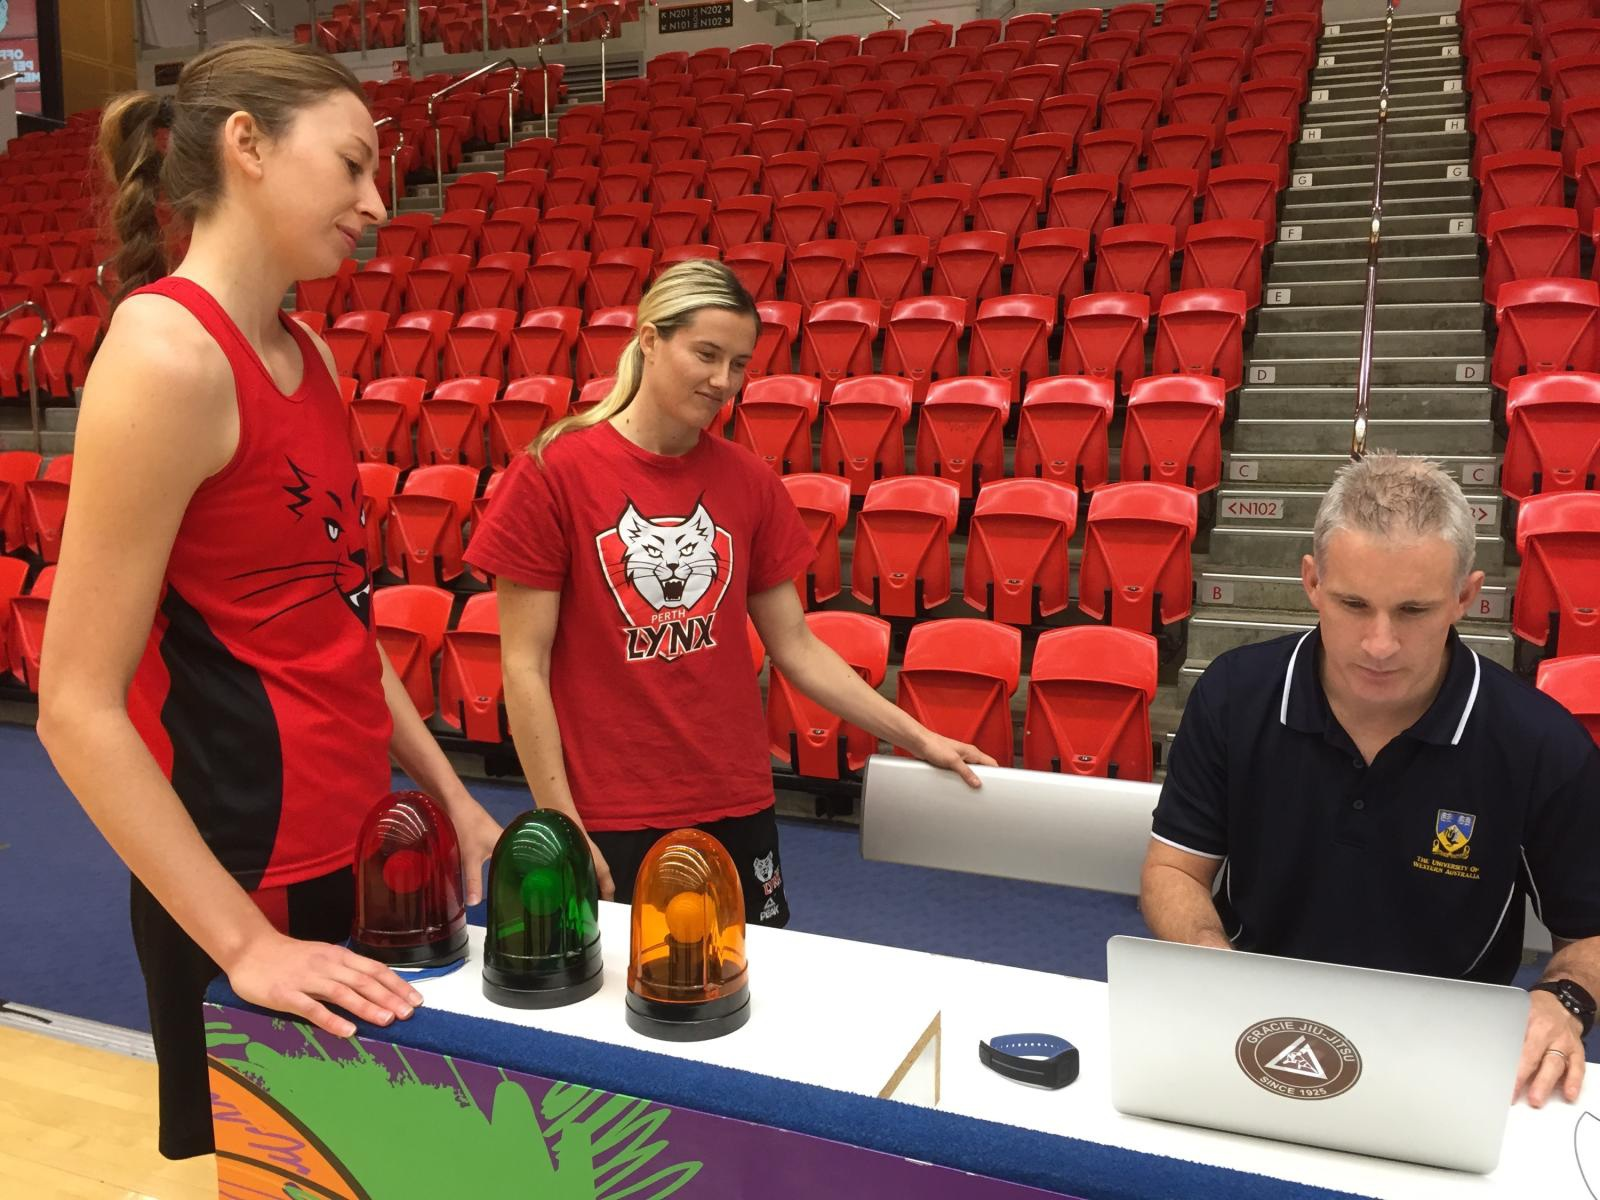 From left: Perth Lynx players Natalie Burton and Sami Whitcomb with UWA's Ian Dunican.